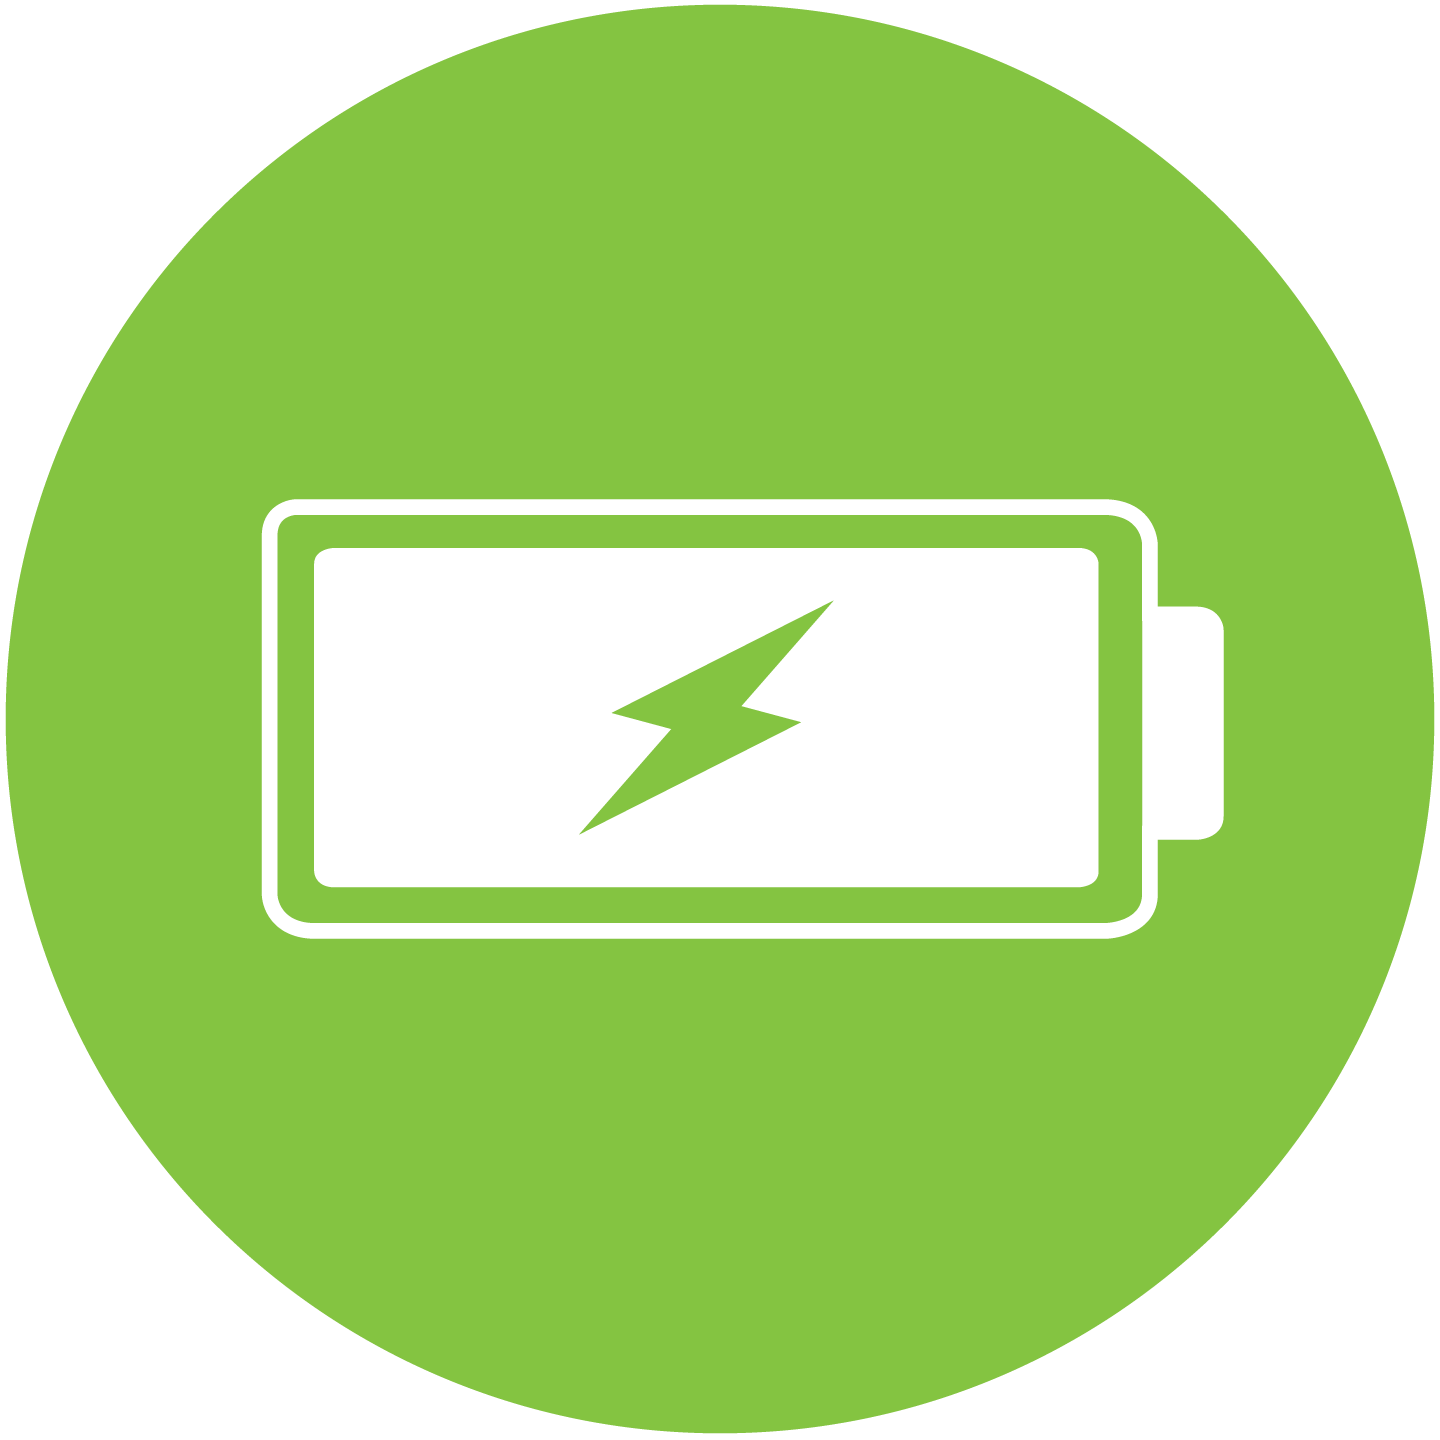 Battery Charging PNG - 19270